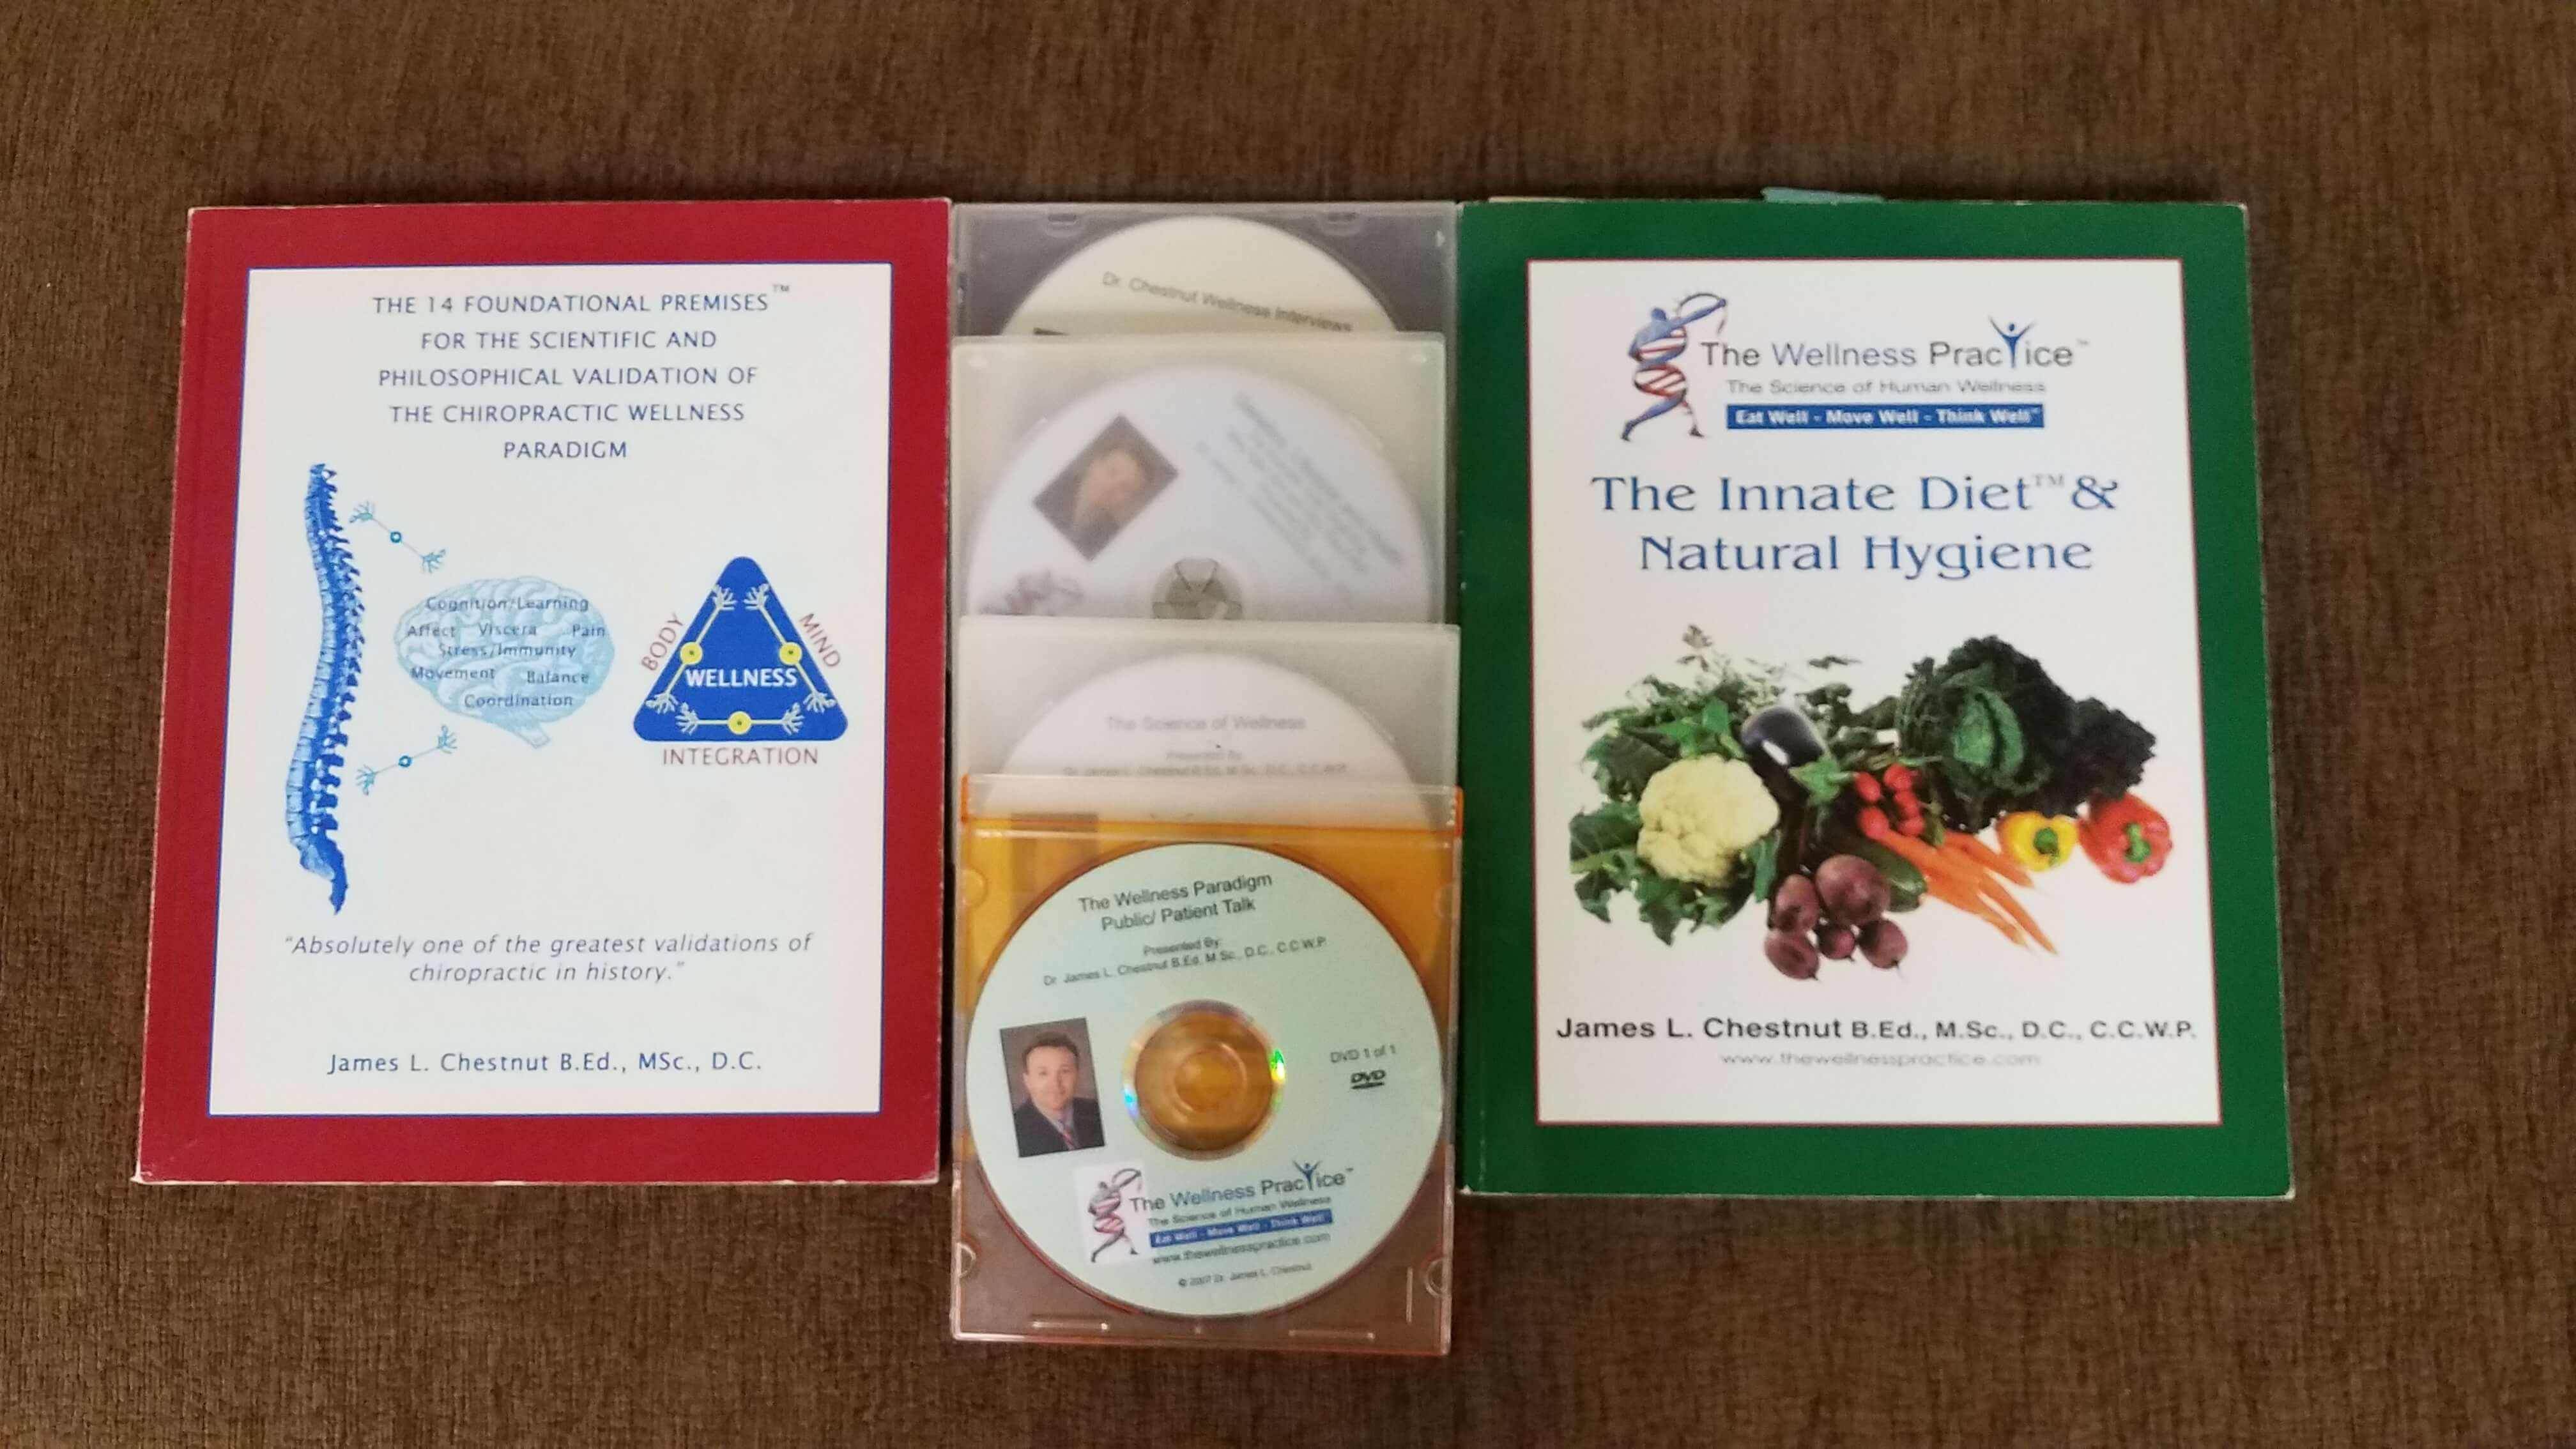 The Wellness Practice Materials by James L. Chestnut B. Ed. MSc., D.C.